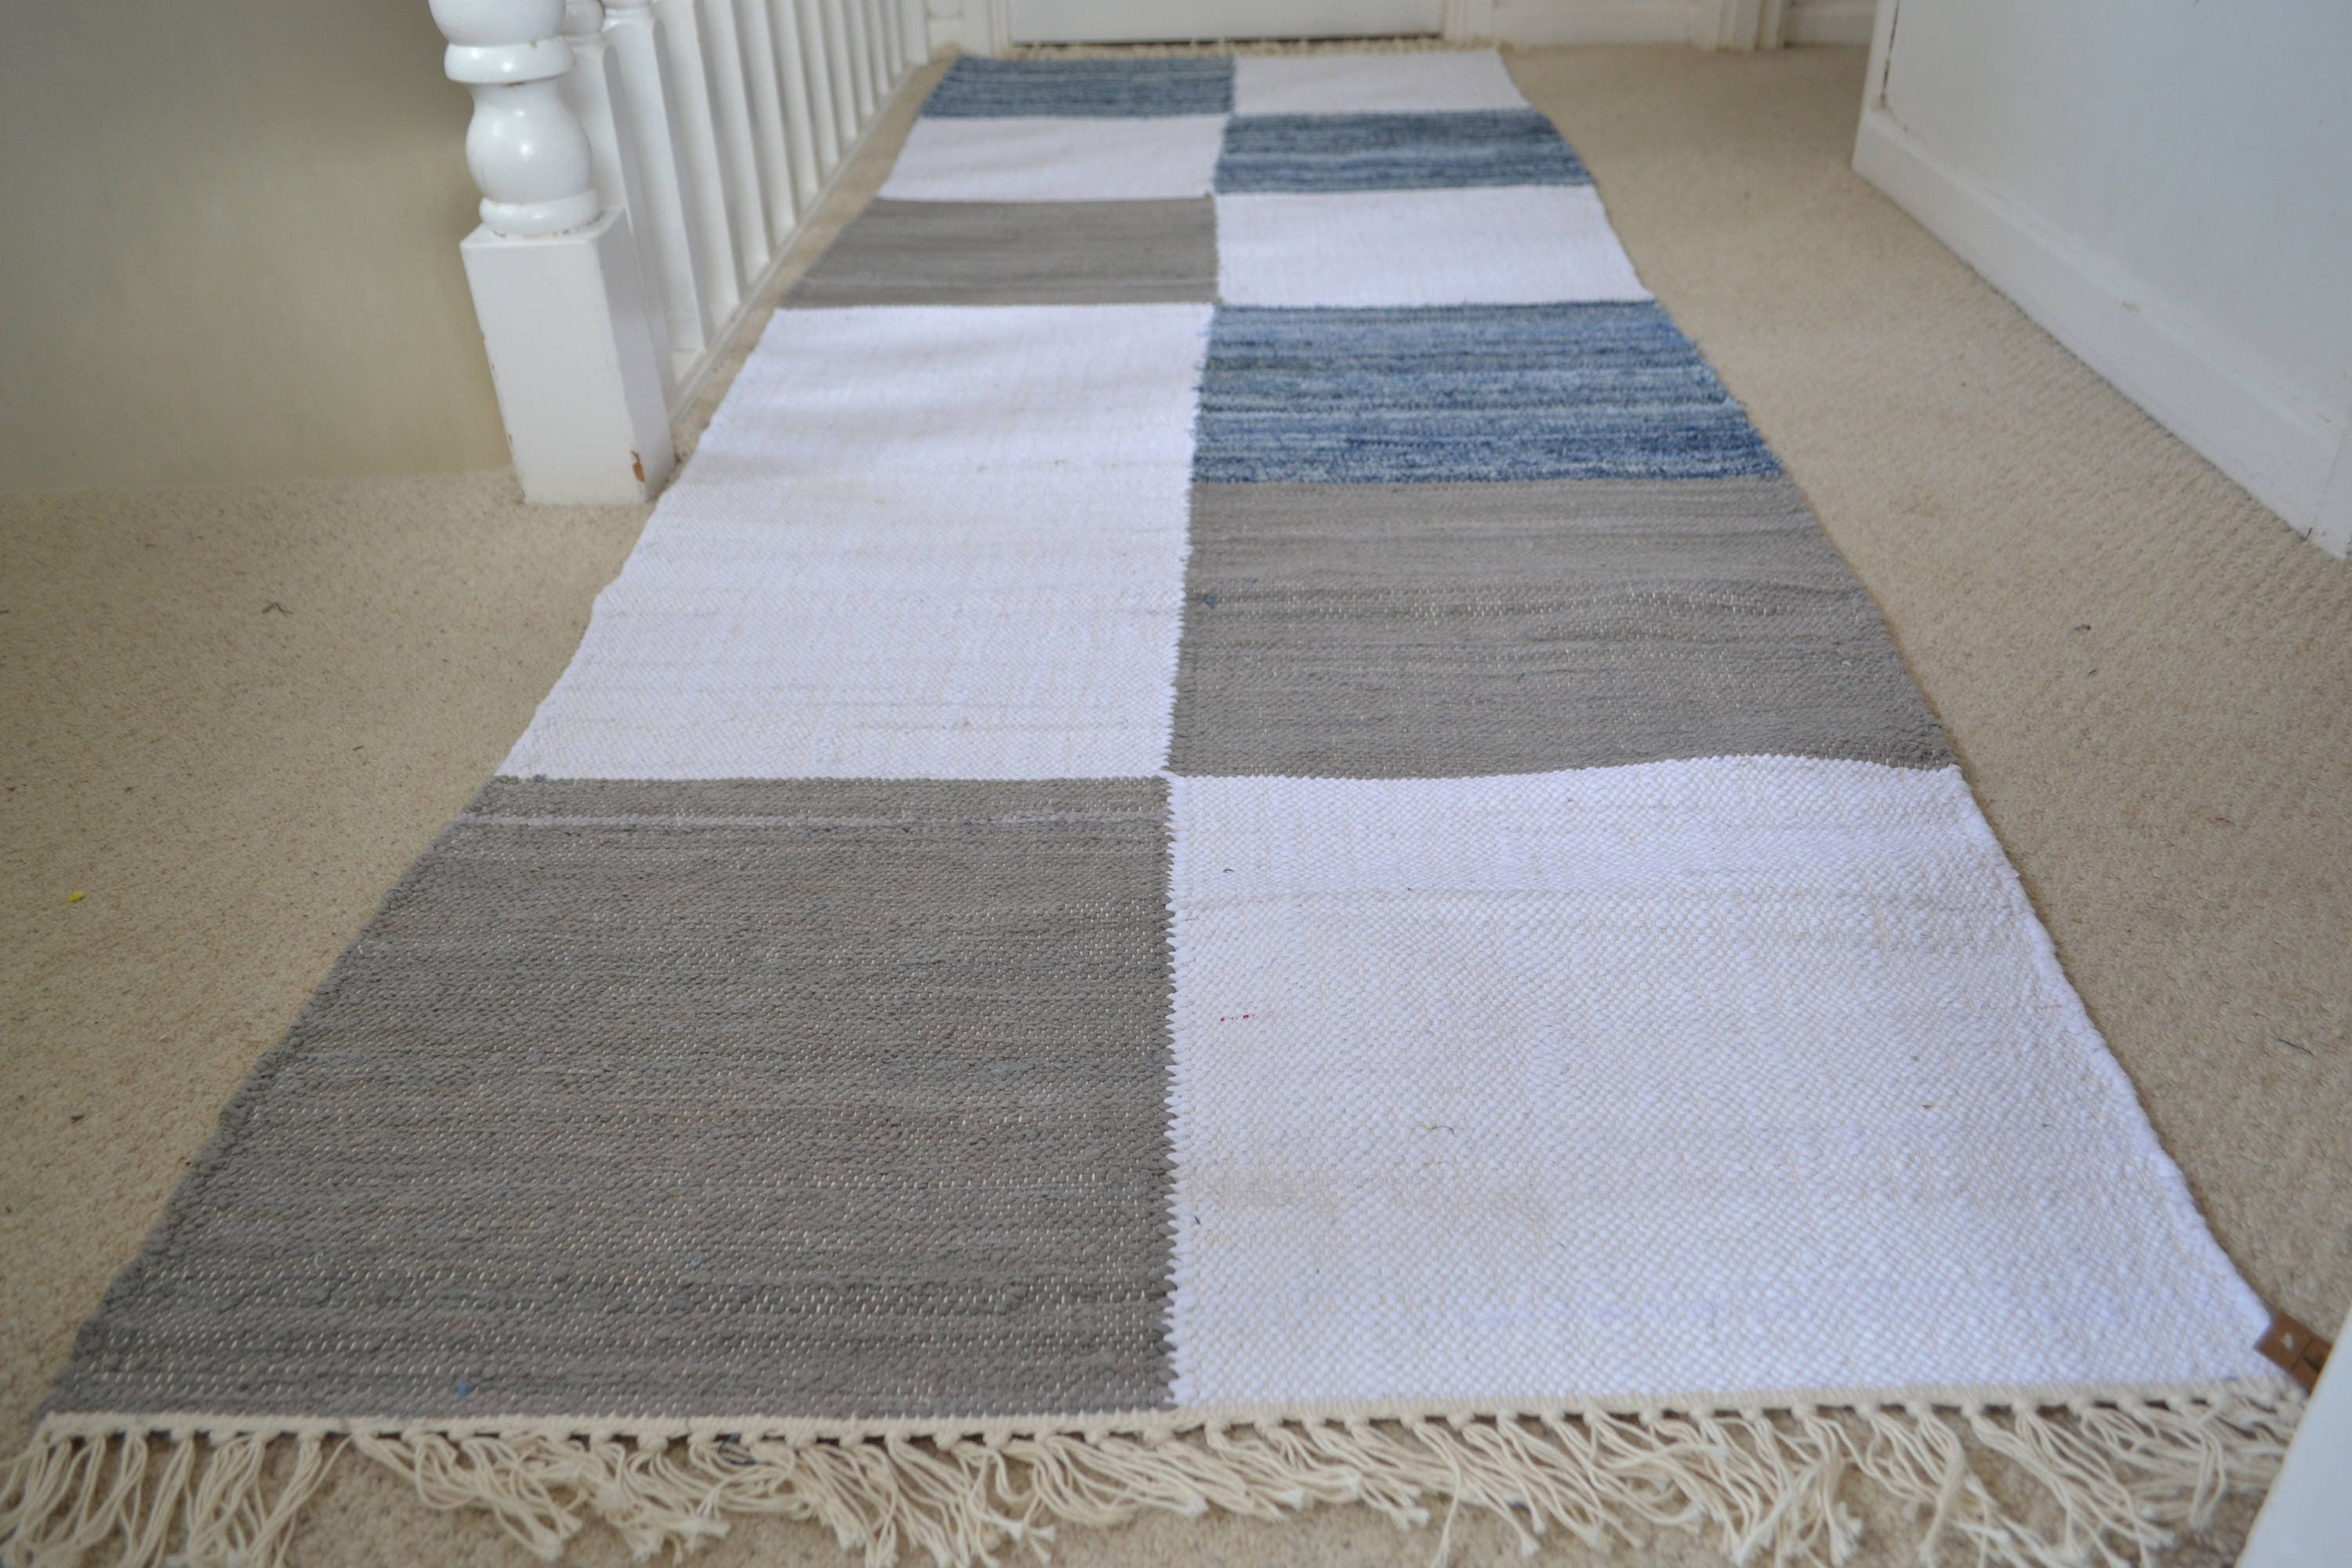 Grey And White Carpet Runner: Unique Denim Rug Mat Runner Grey White Blue Cotton Woven 80cm